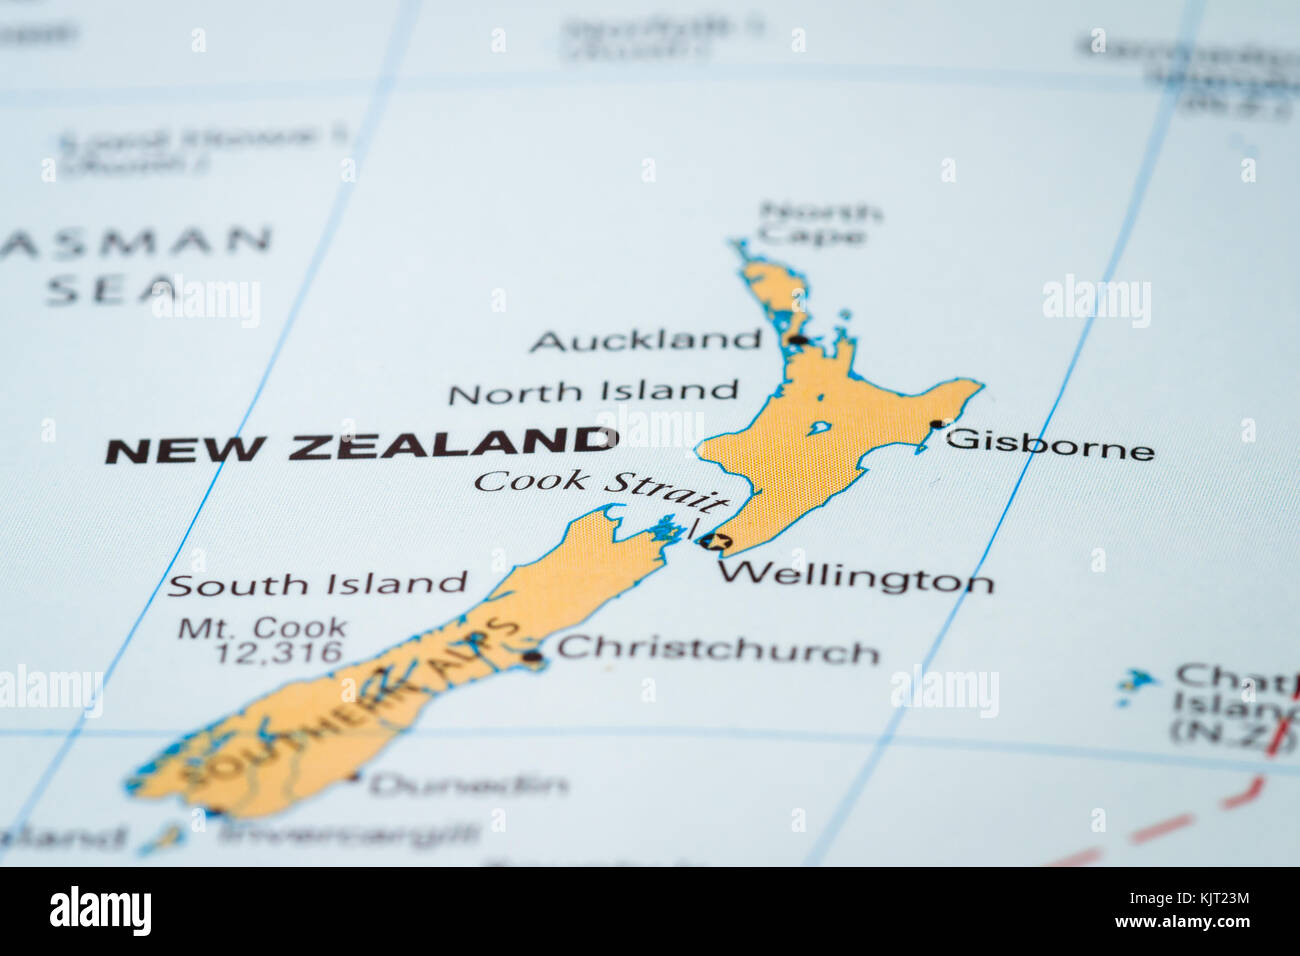 Christchurch World Map.World Map With The Country Of New Zealand In Focus Stock Photo